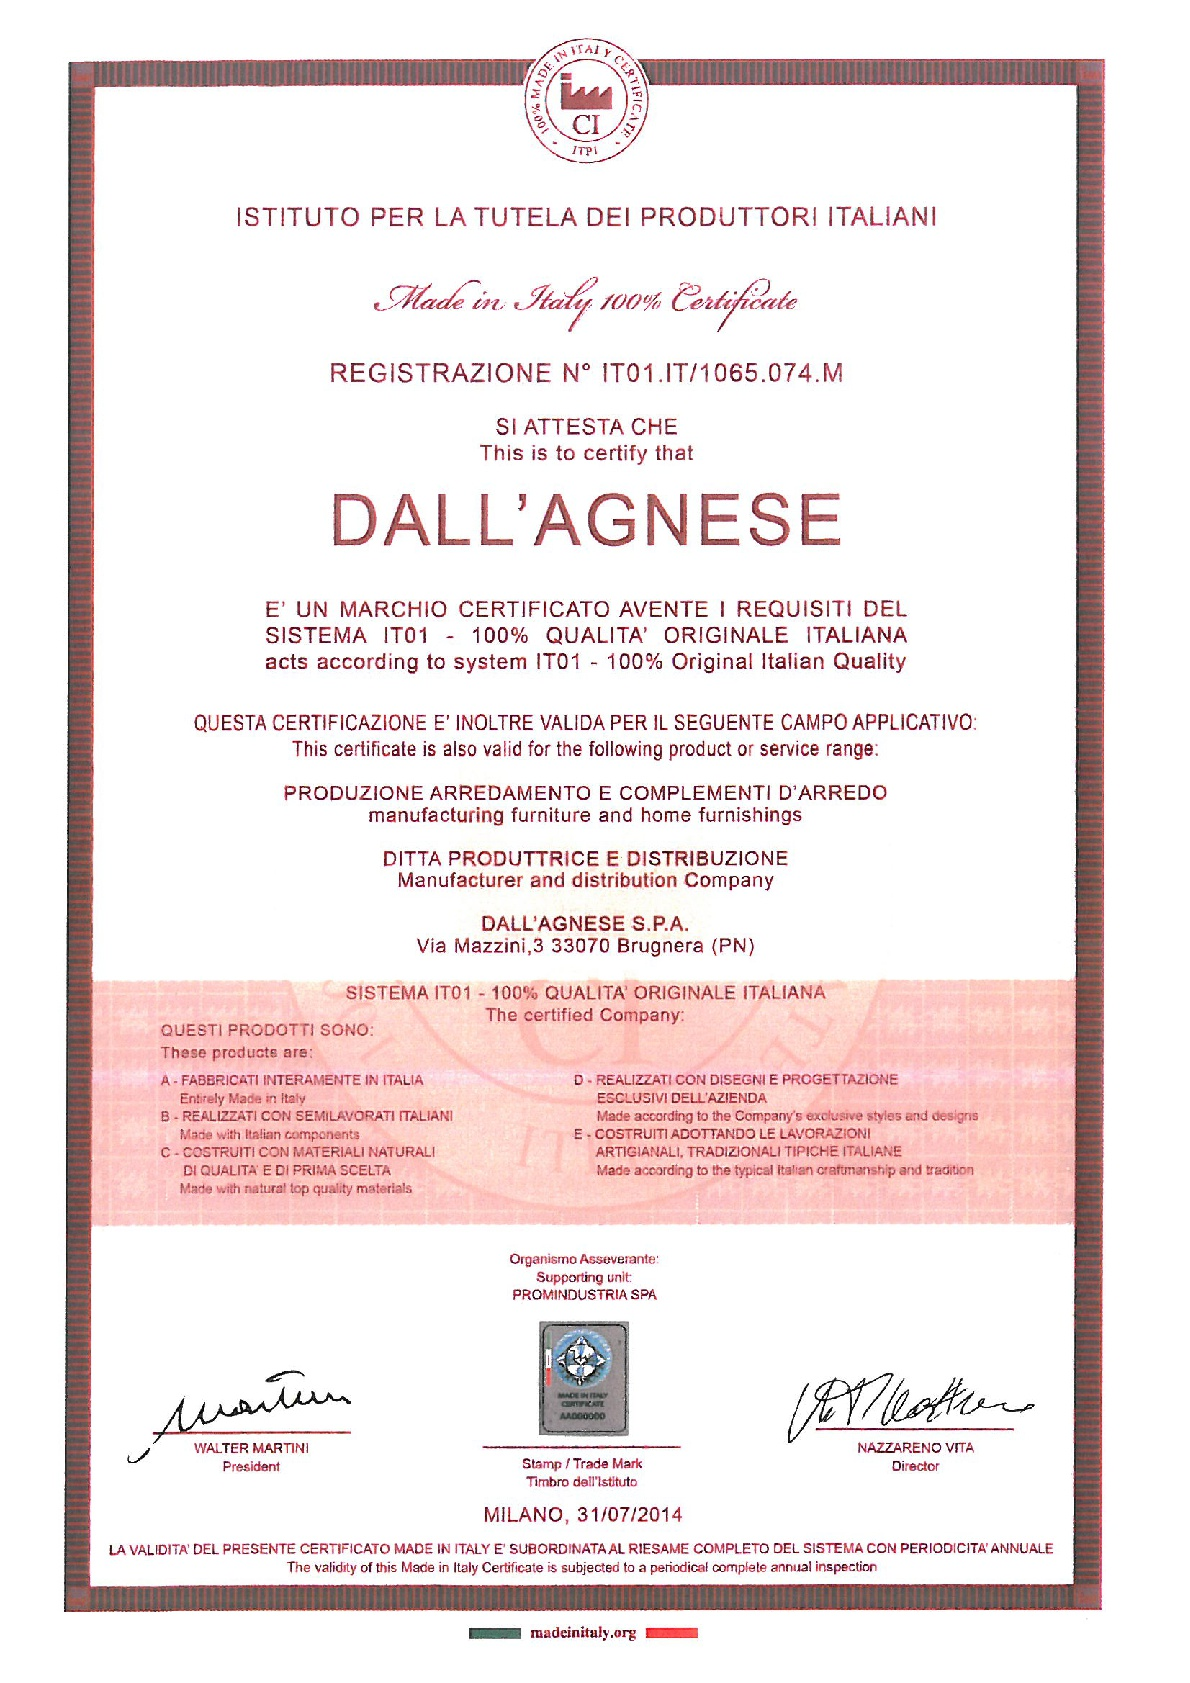 DALL'AGNESE CERTIFIE 100% QUALITÉ ITALIENNE